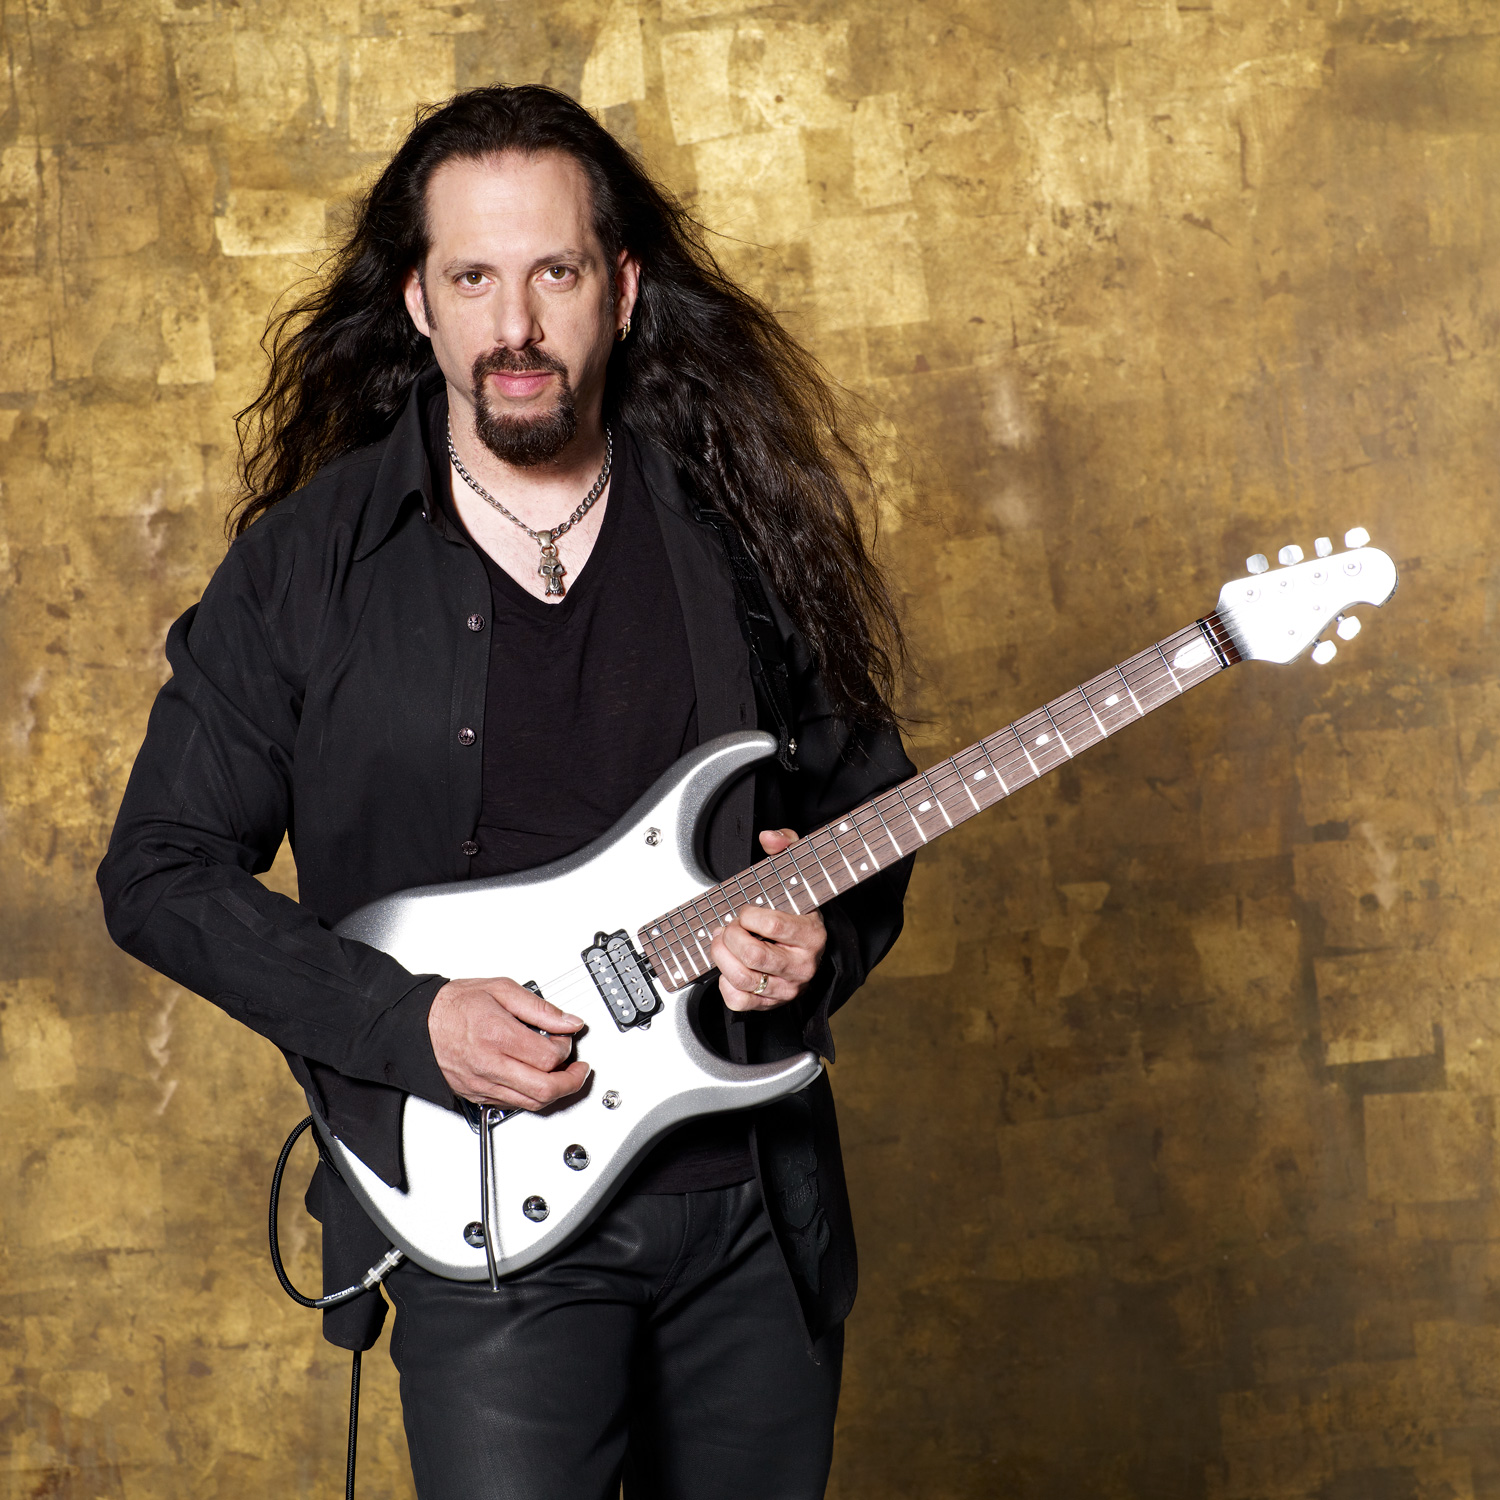 John Petrucci photo by Larry DiMarzio